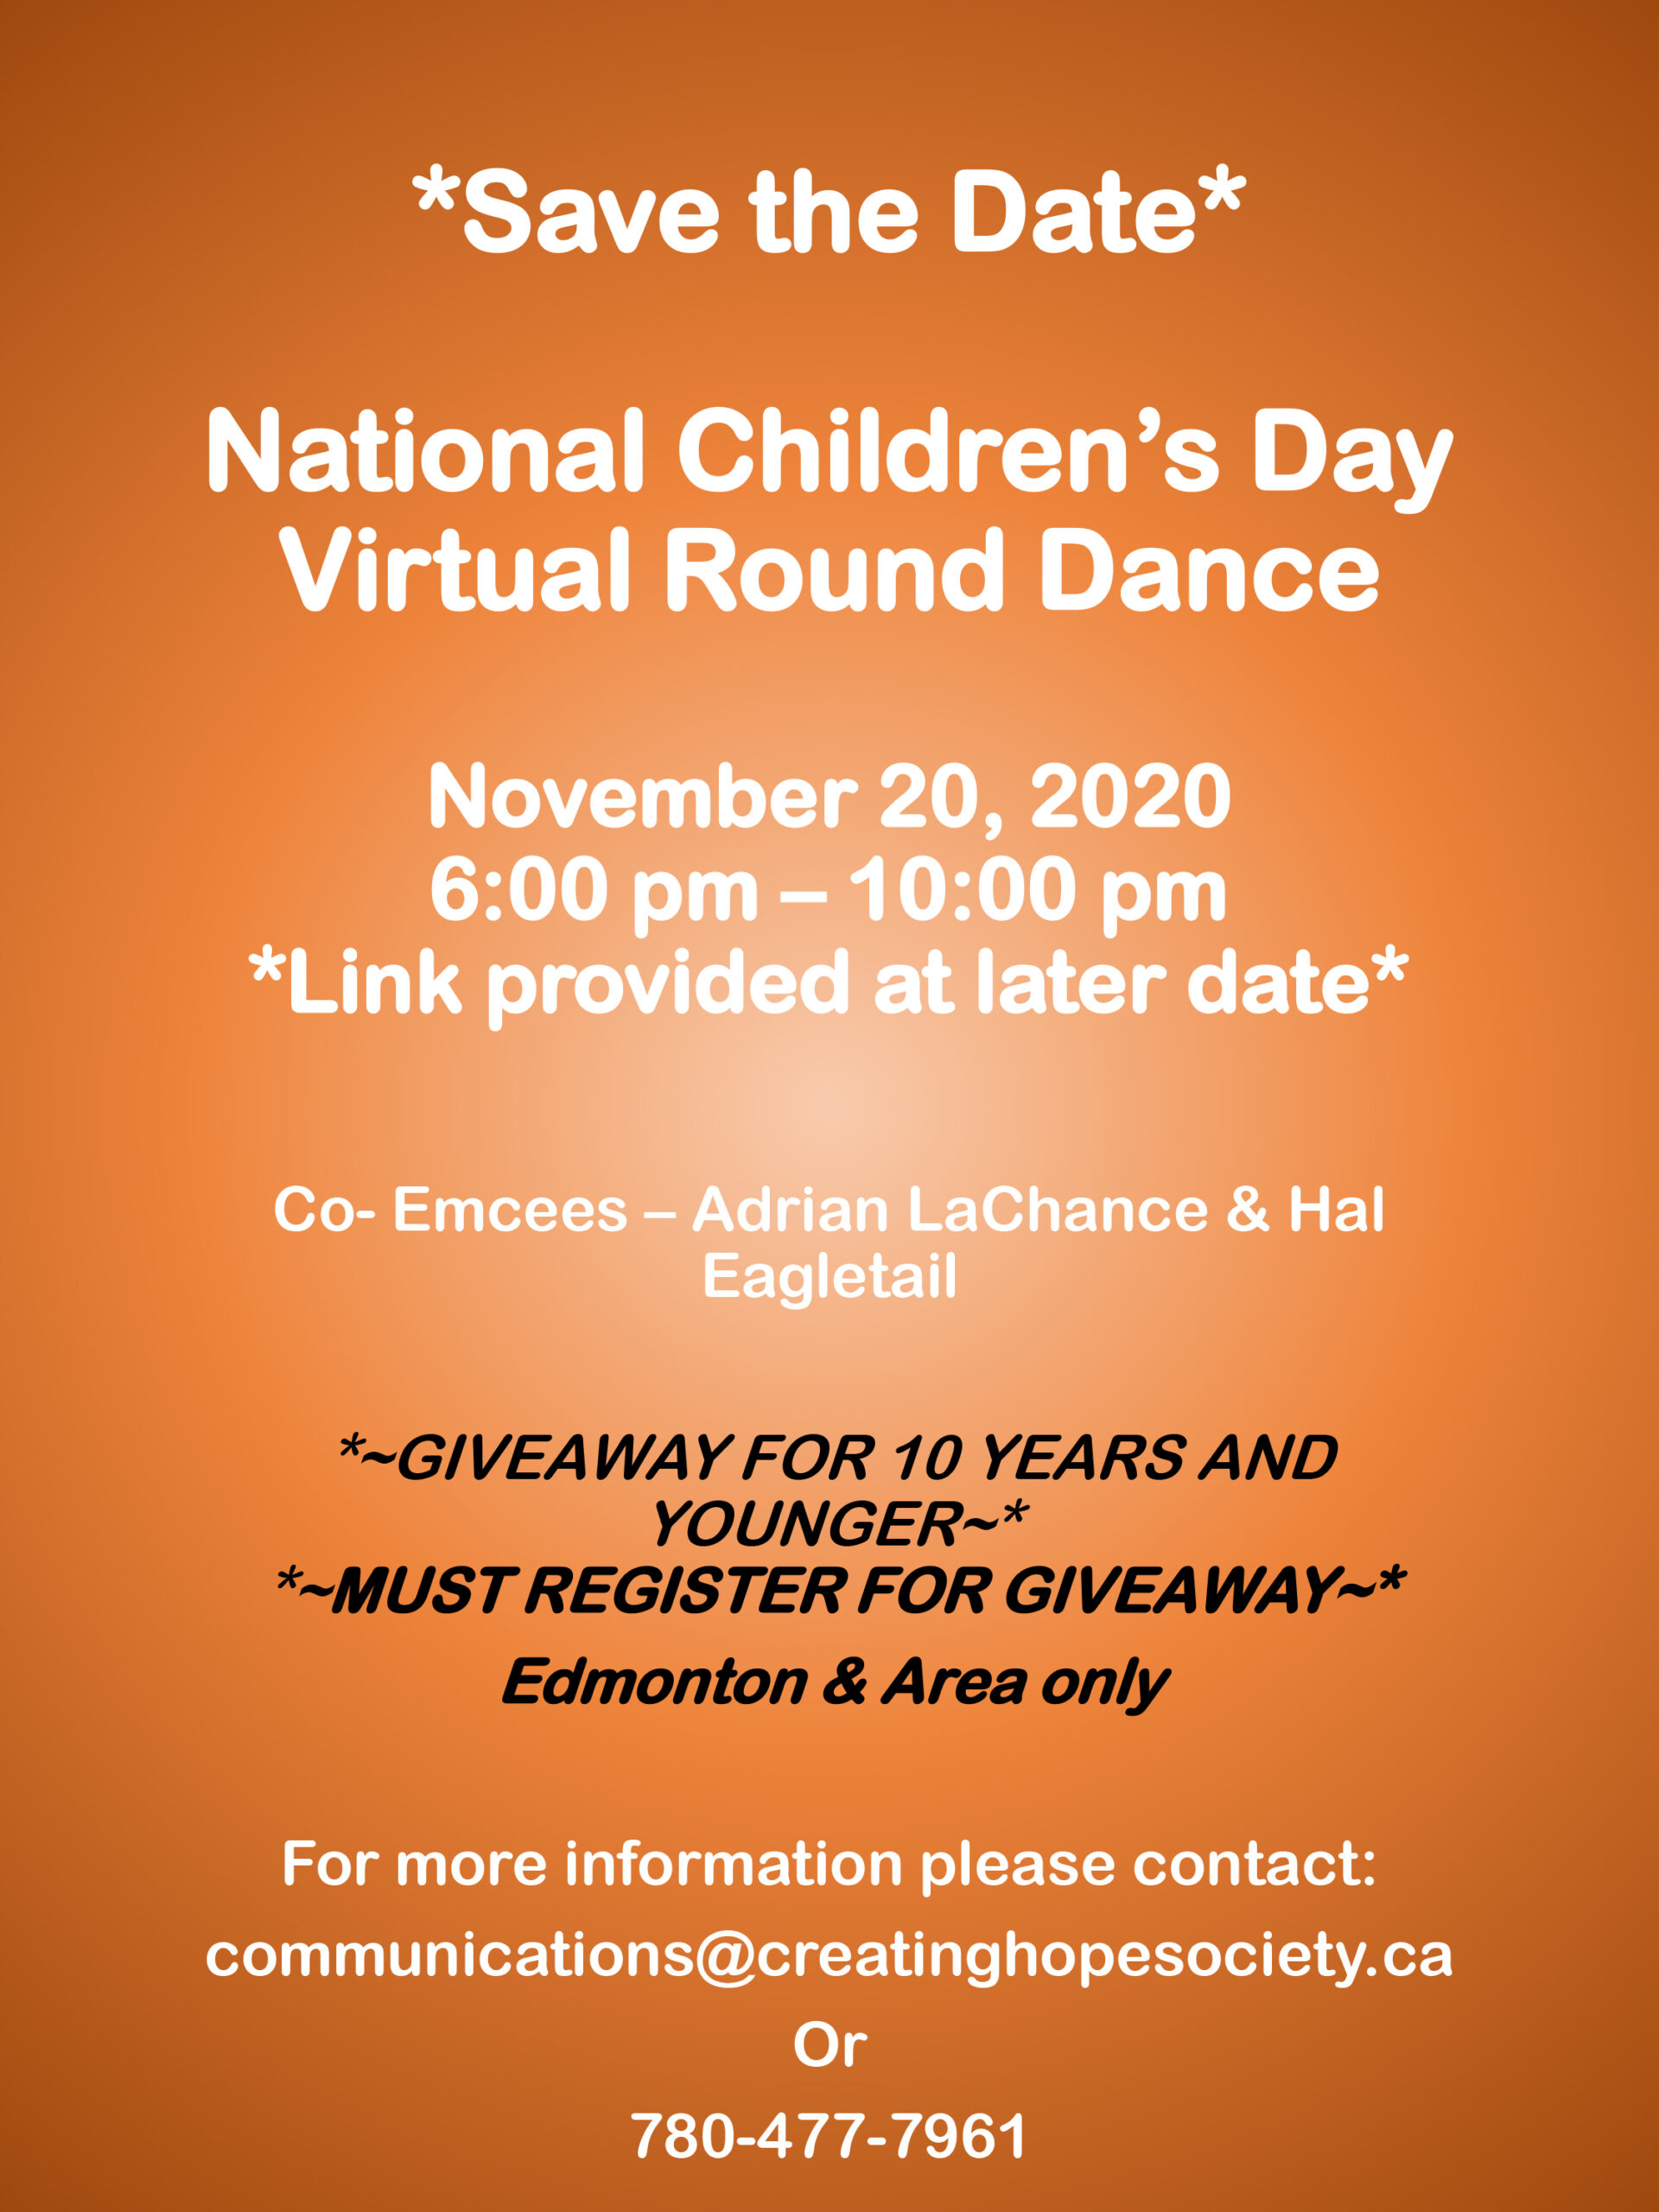 National Children's Day Virtual Round Dance Round Dance scaled Sample Blog Round Dance scaled